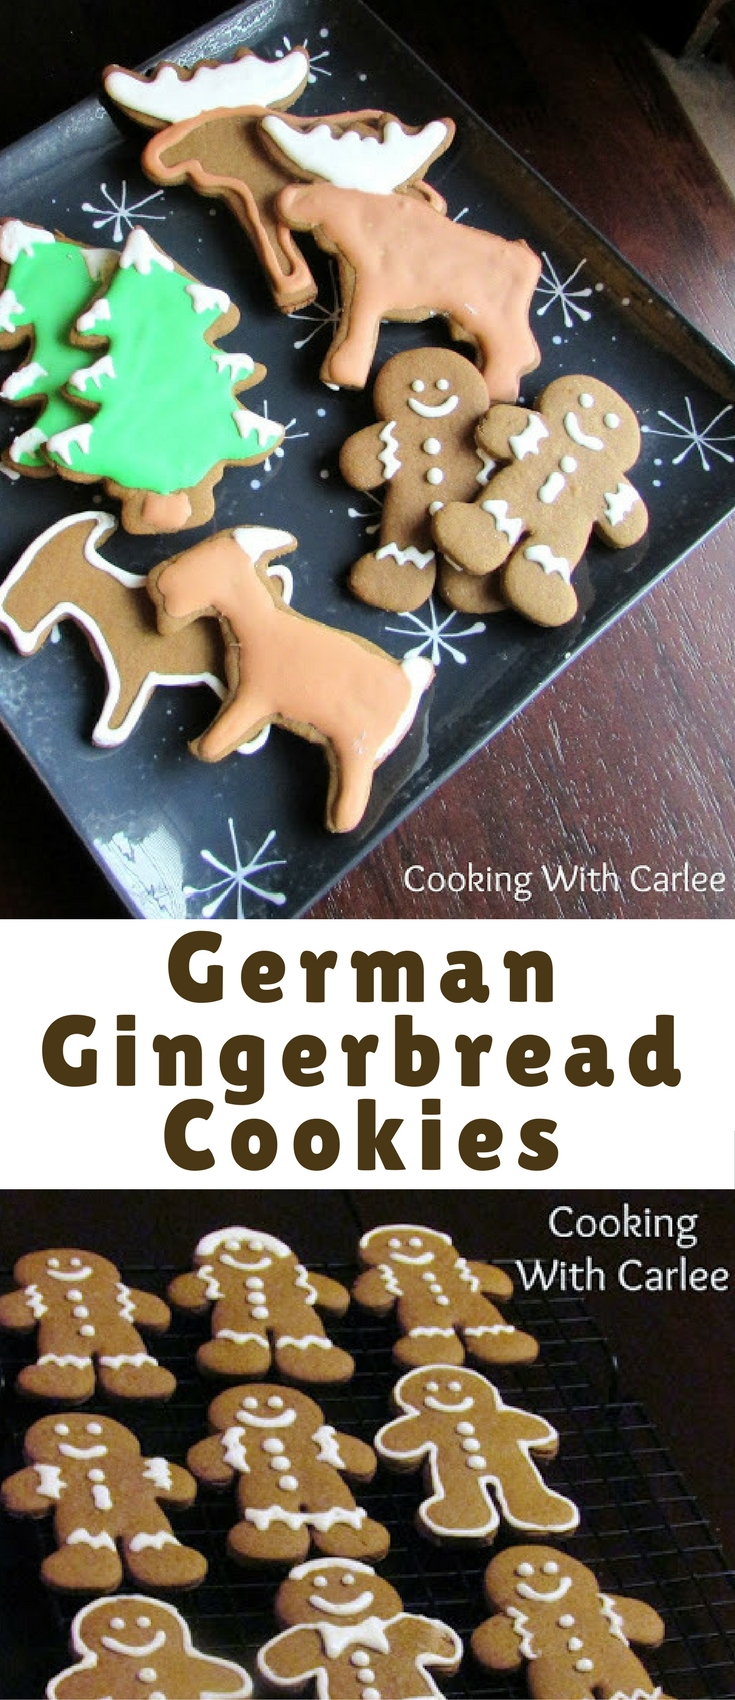 German Gingerbread Cookies Blogger Bests